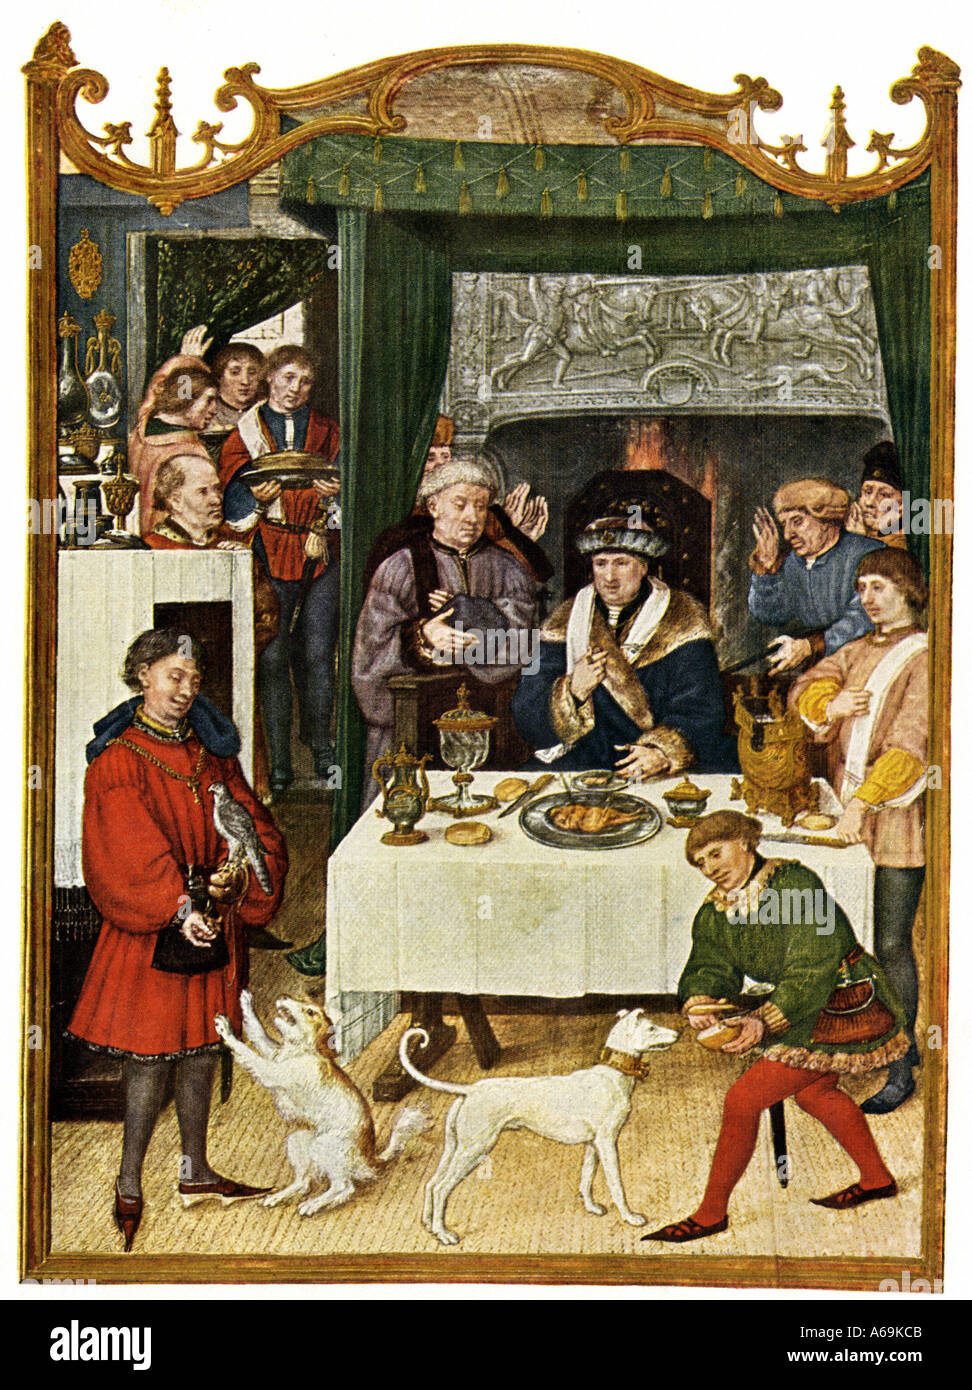 Wealthy family dinner table in the Middle Ages. Color halftone - Stock Image